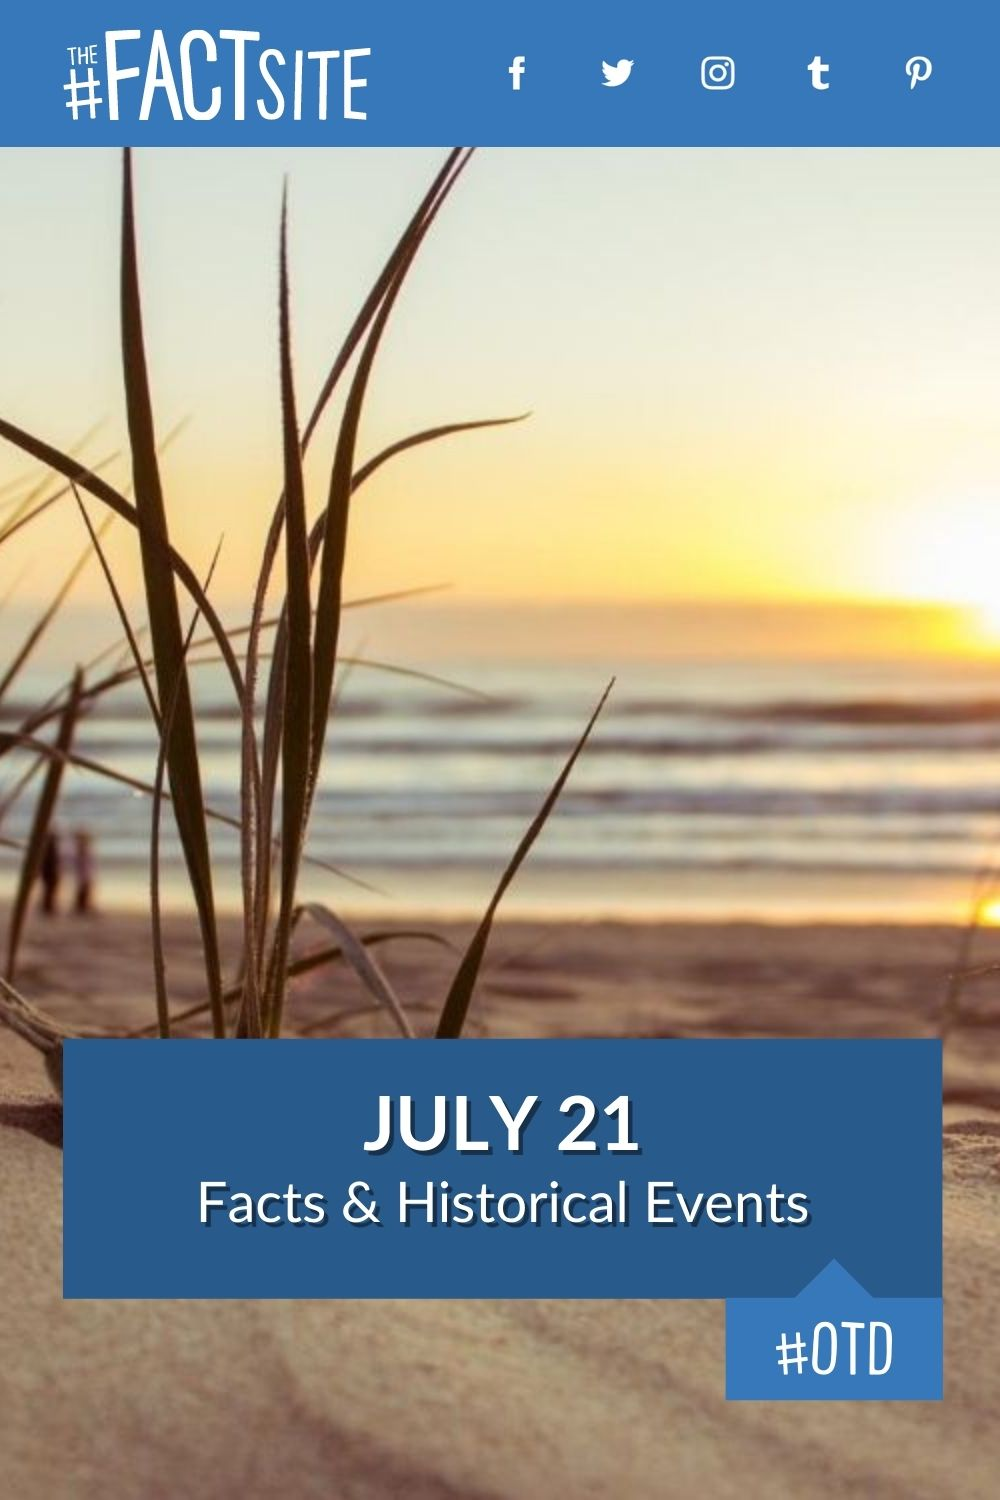 Facts & Historic Events That Happened on July 21